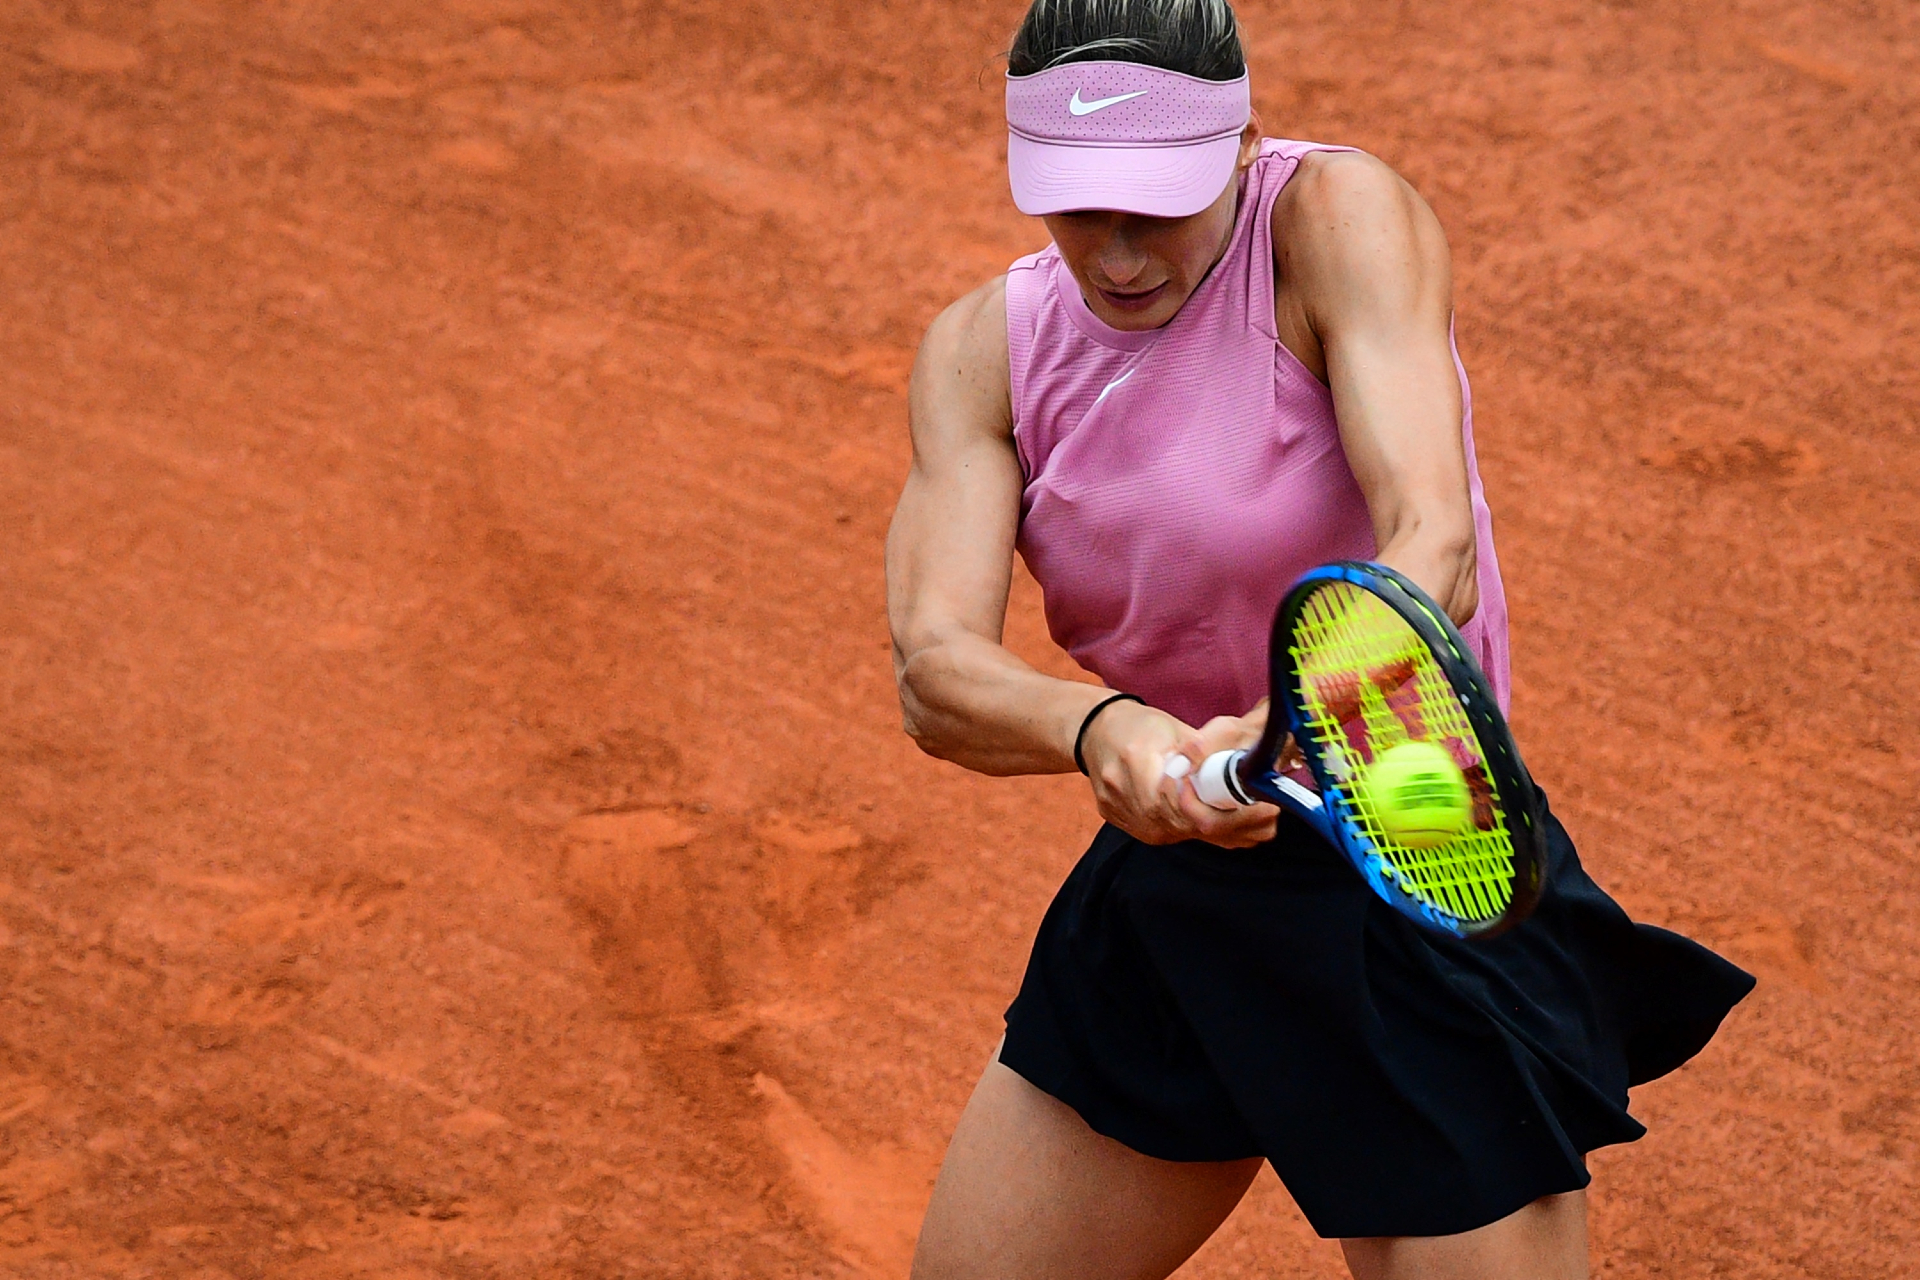 The 10 Best Female Tennis Players in History